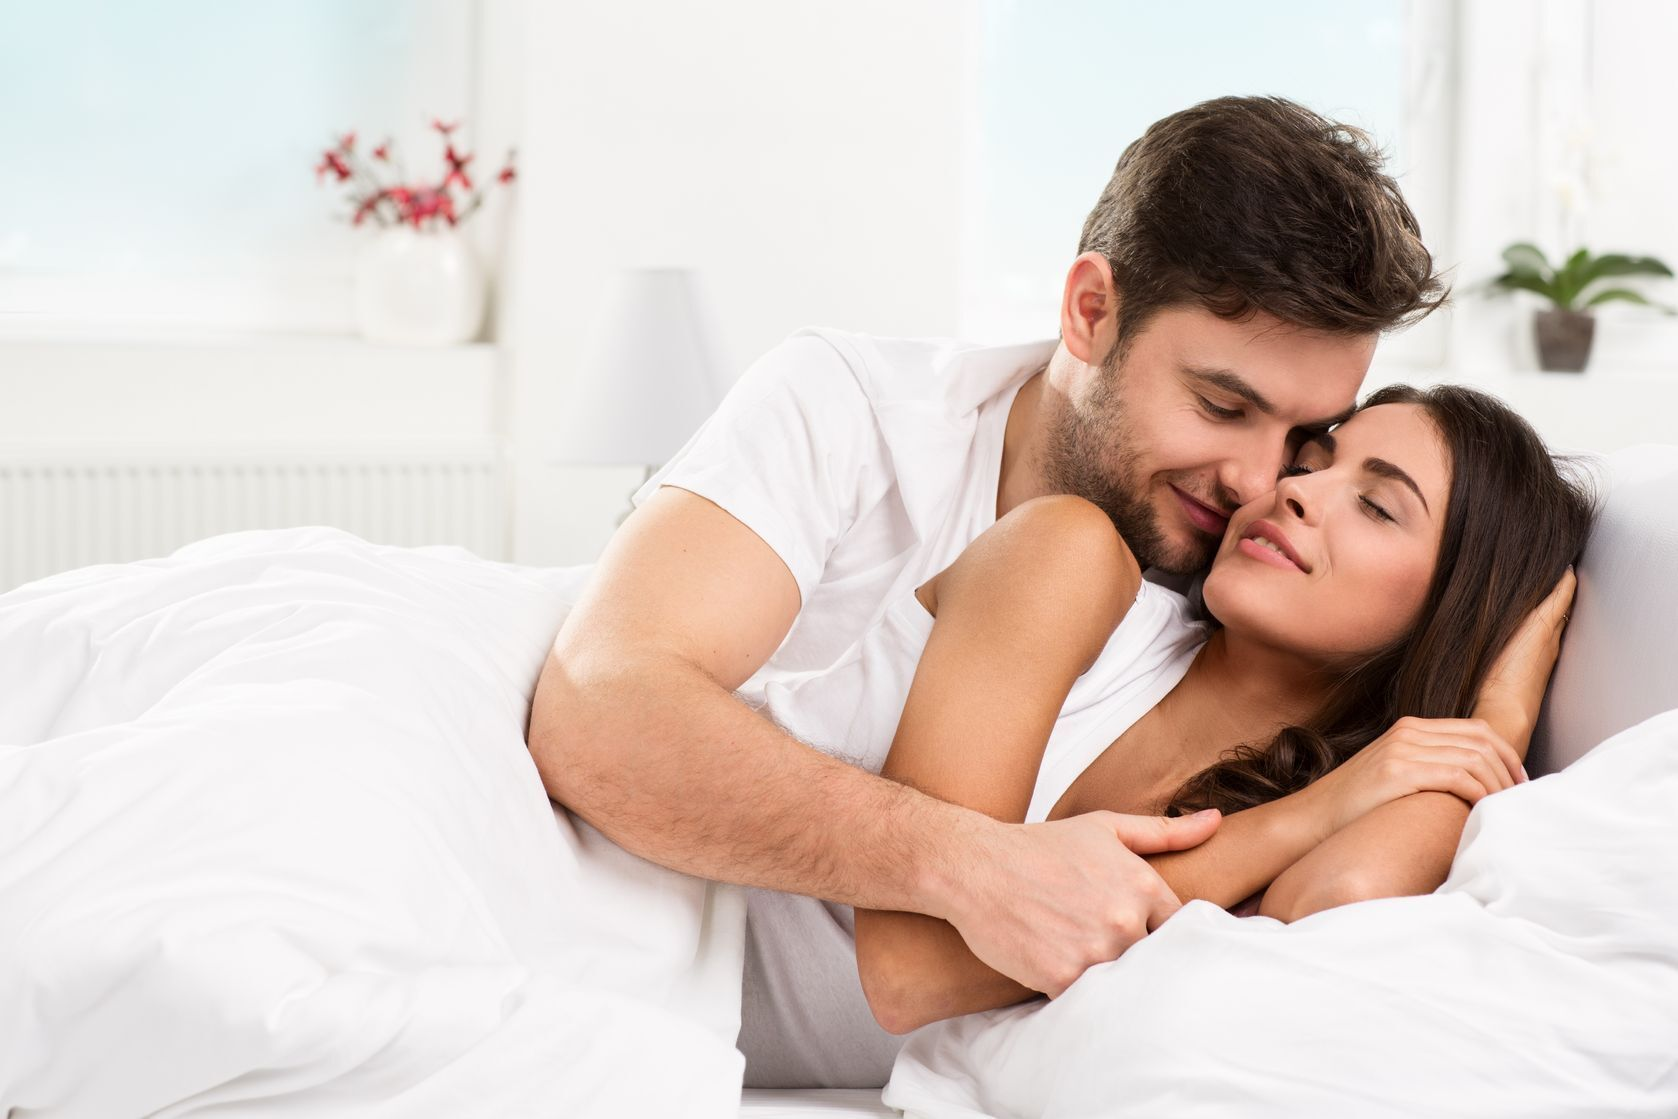 Ladies, 7 Signs He'll Be GOOD In Bed